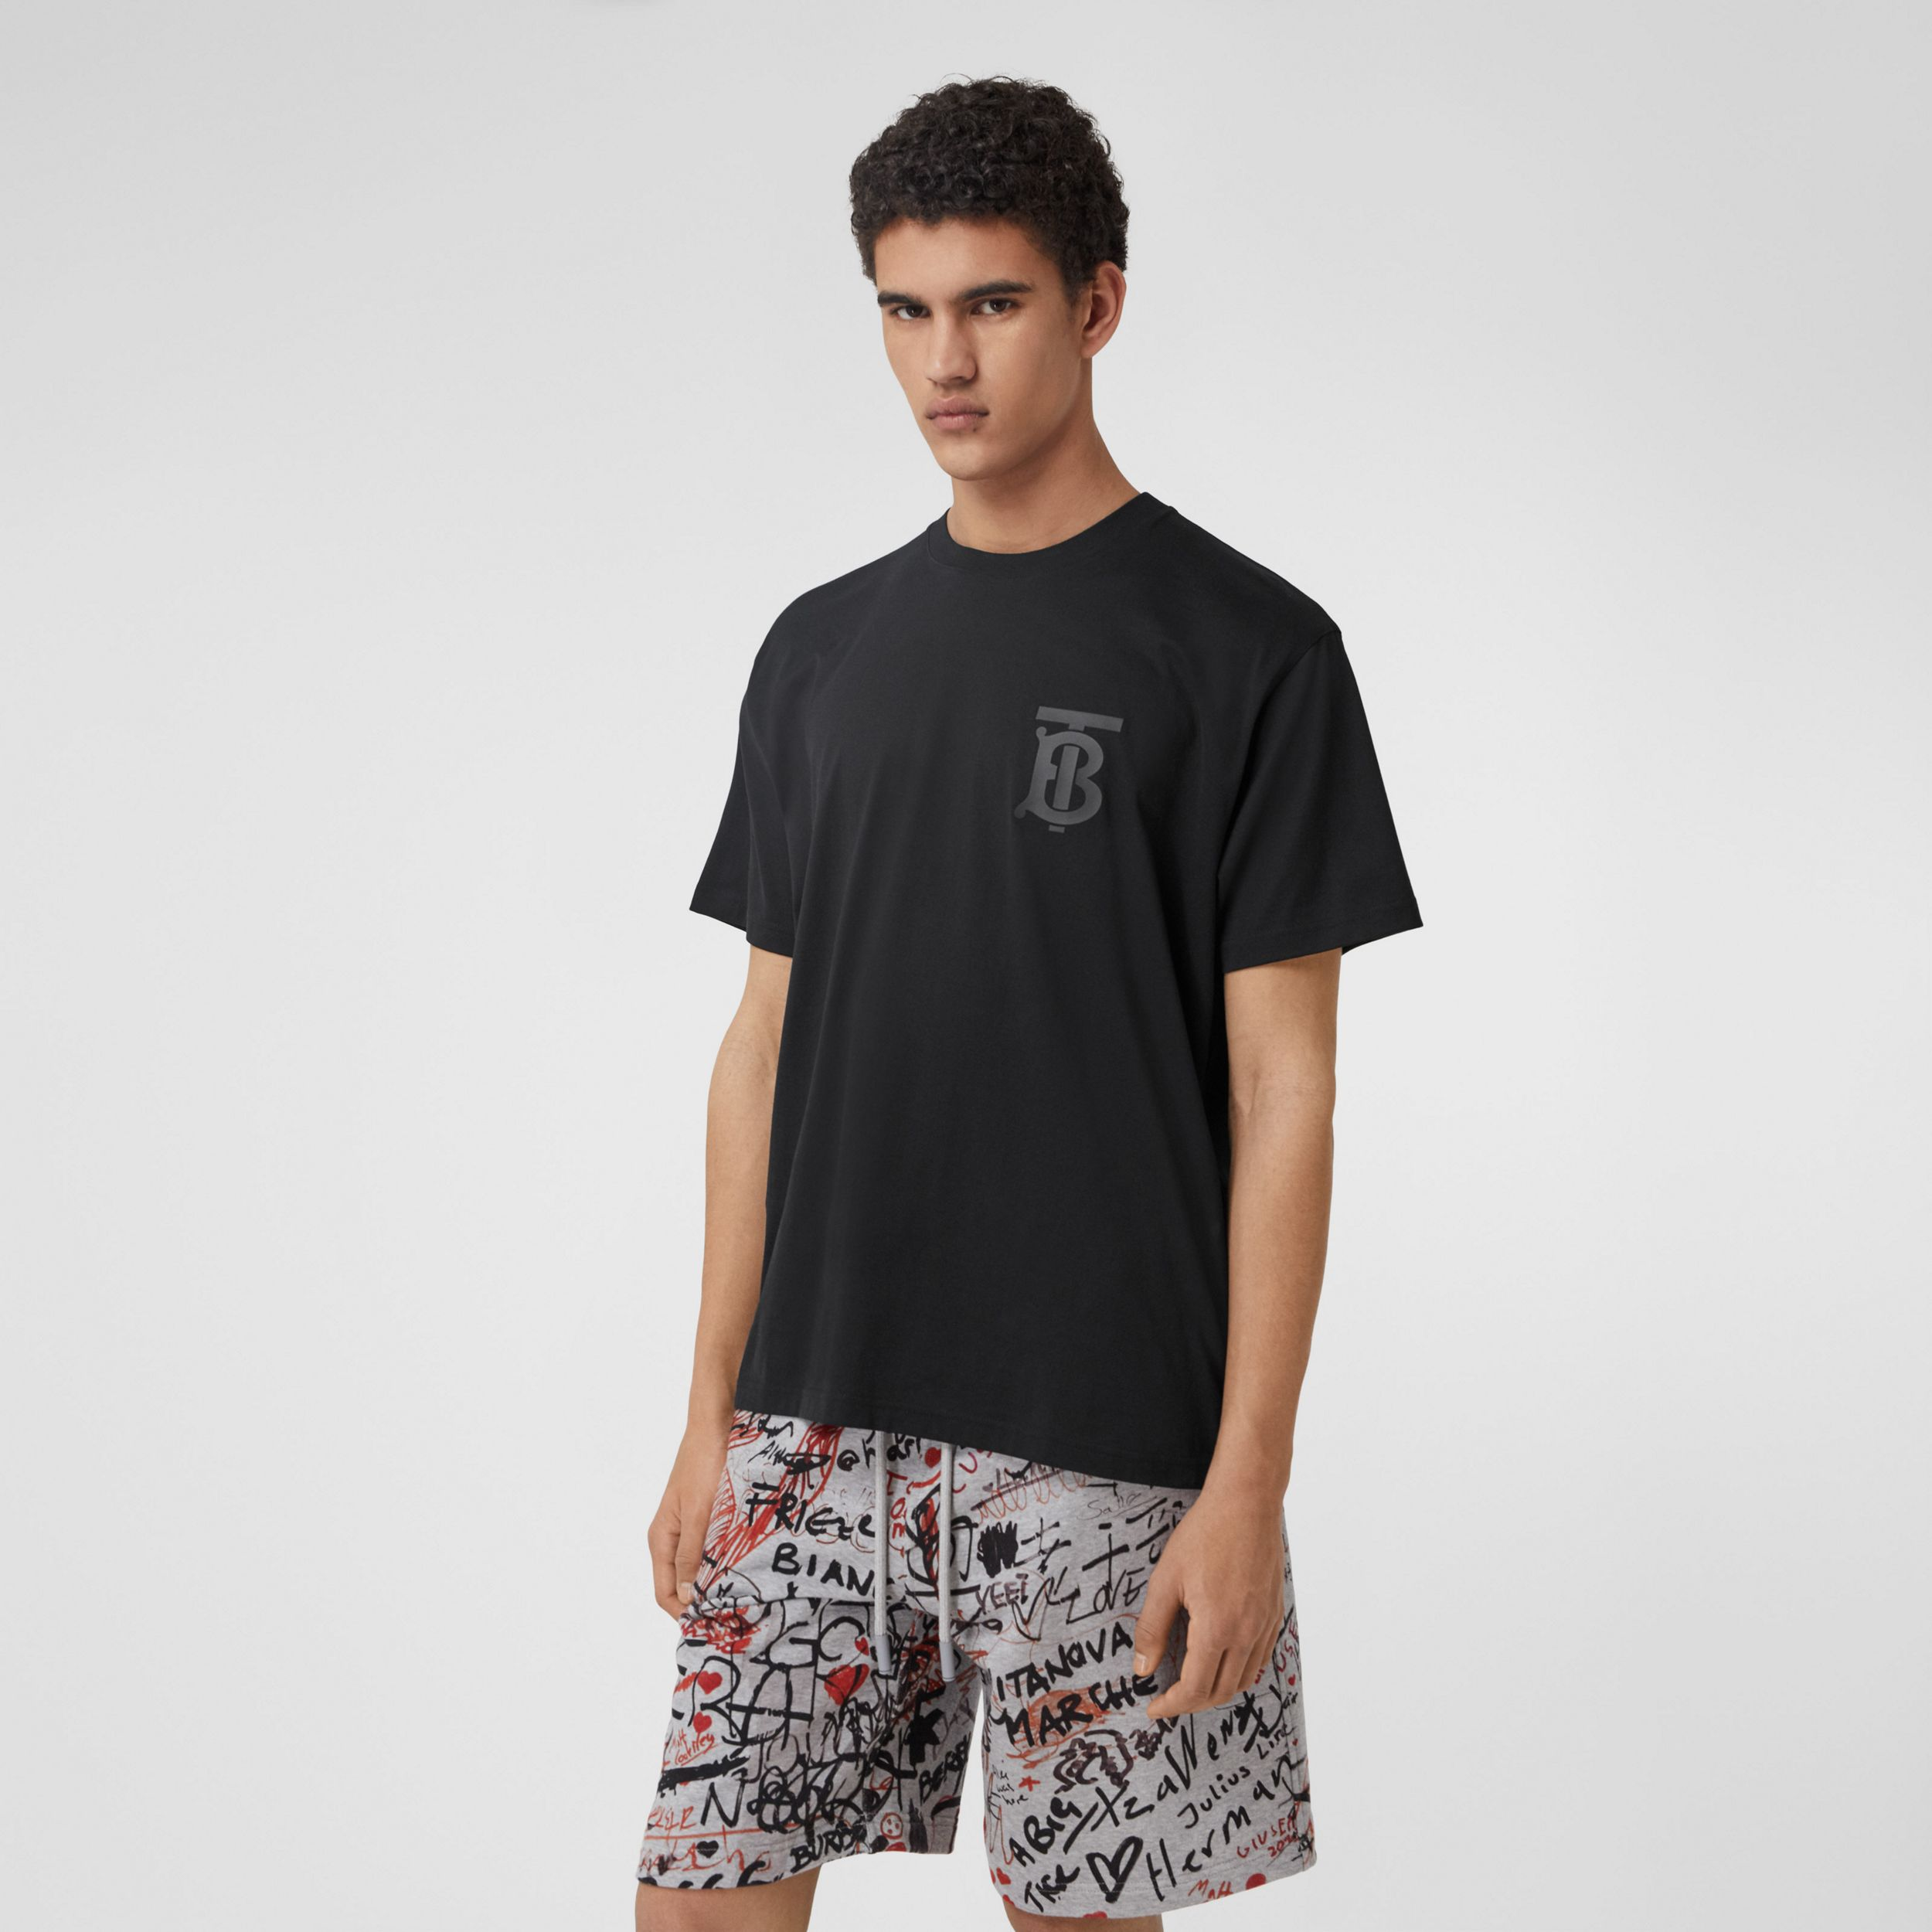 Monogram Motif Cotton Oversized T-shirt in Black | Burberry - 1